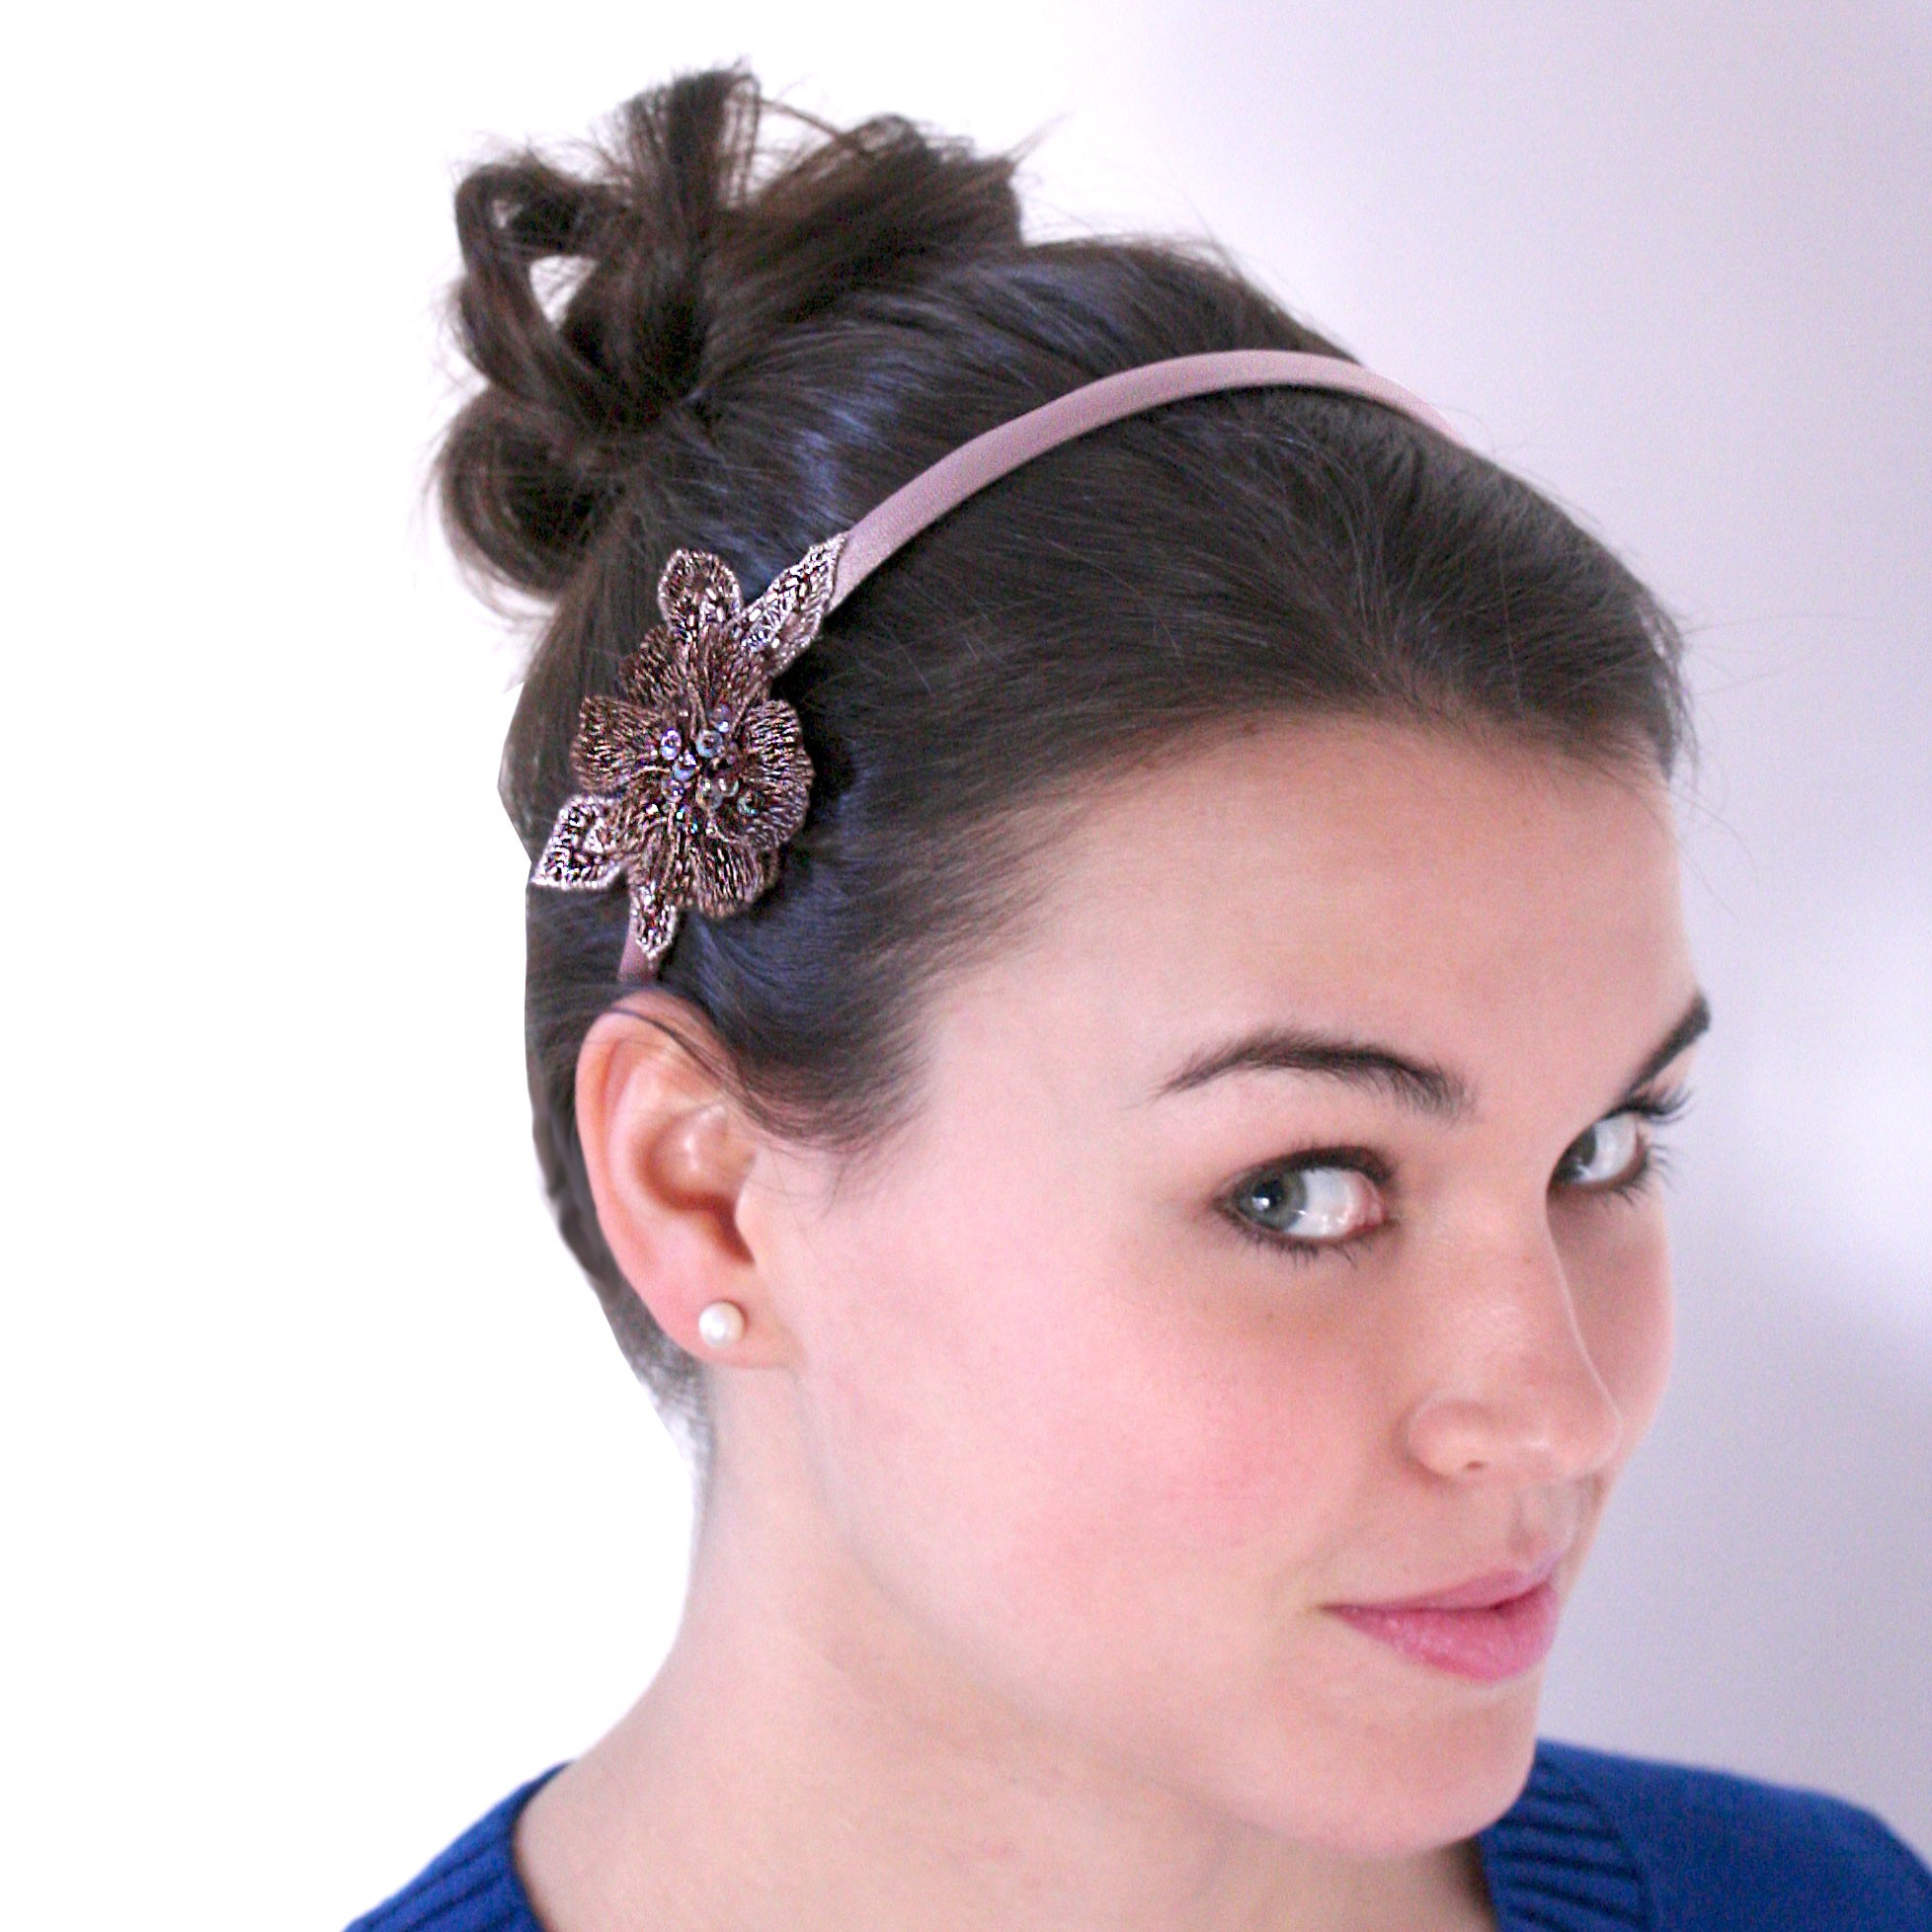 Cute And Stylish Headbands For Women 2013 Inkcloth